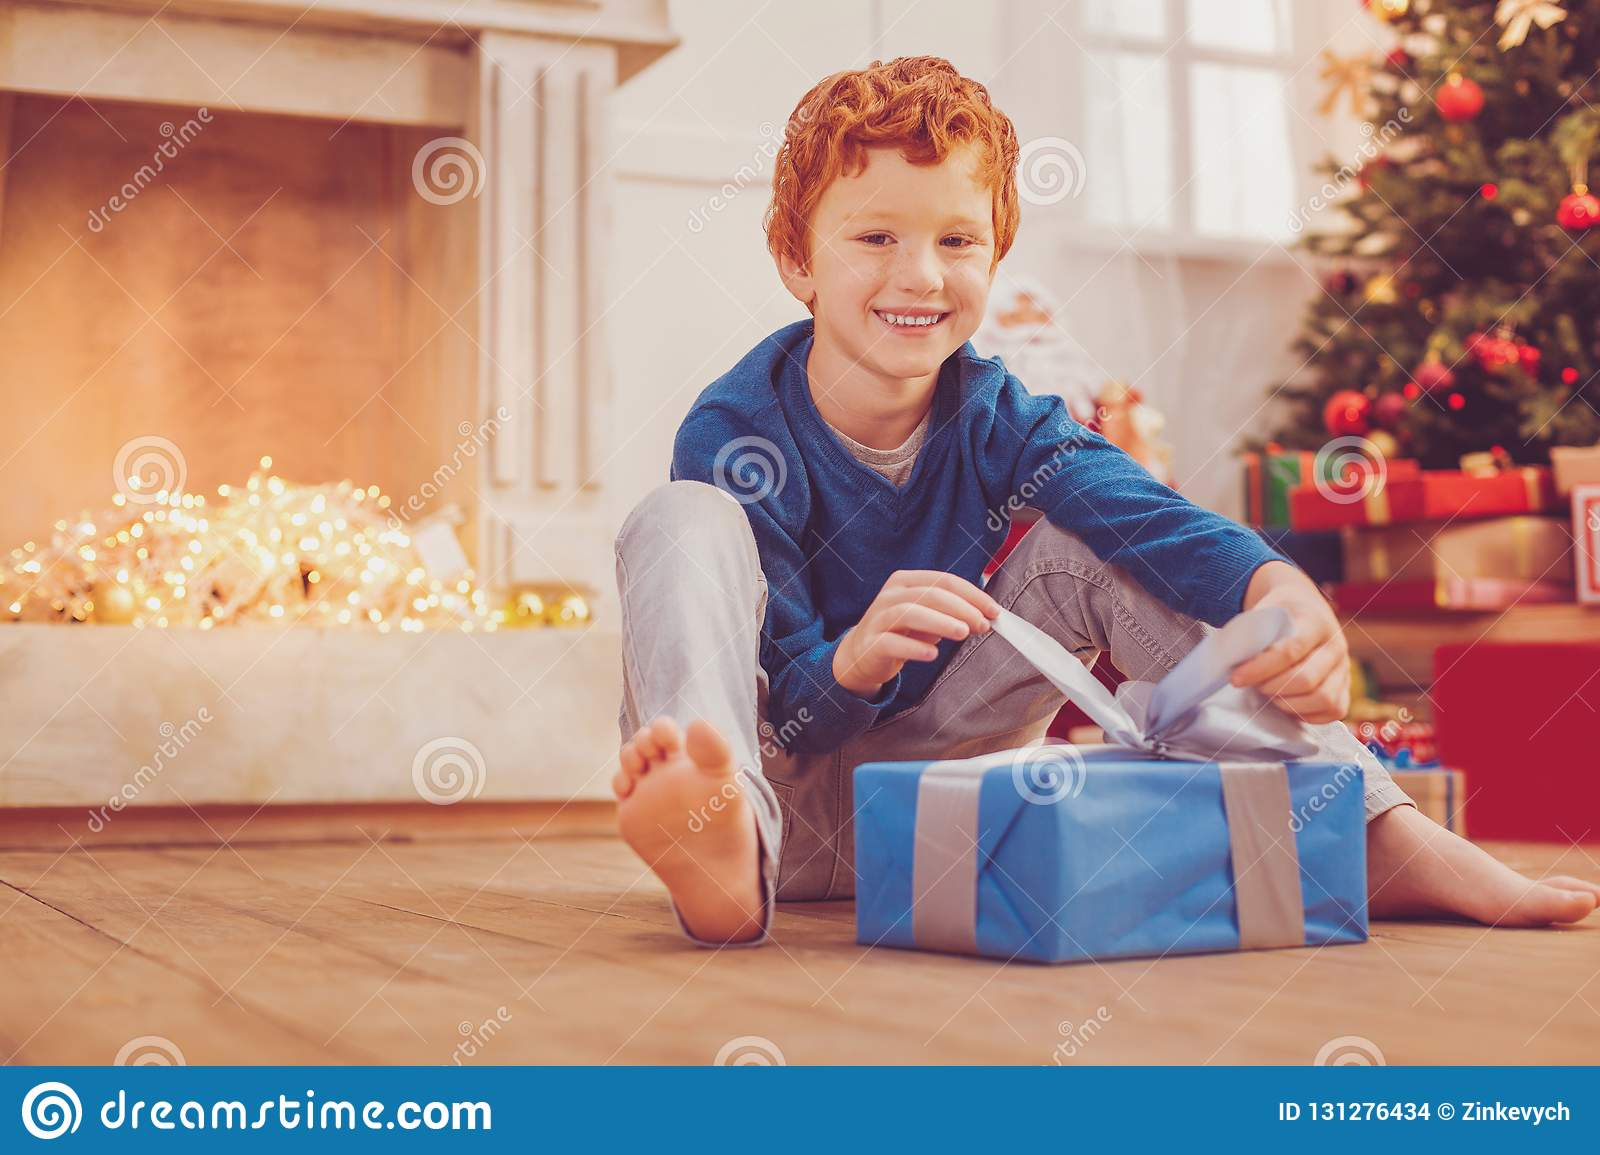 Cheerful preteen boy opening his Christmas present